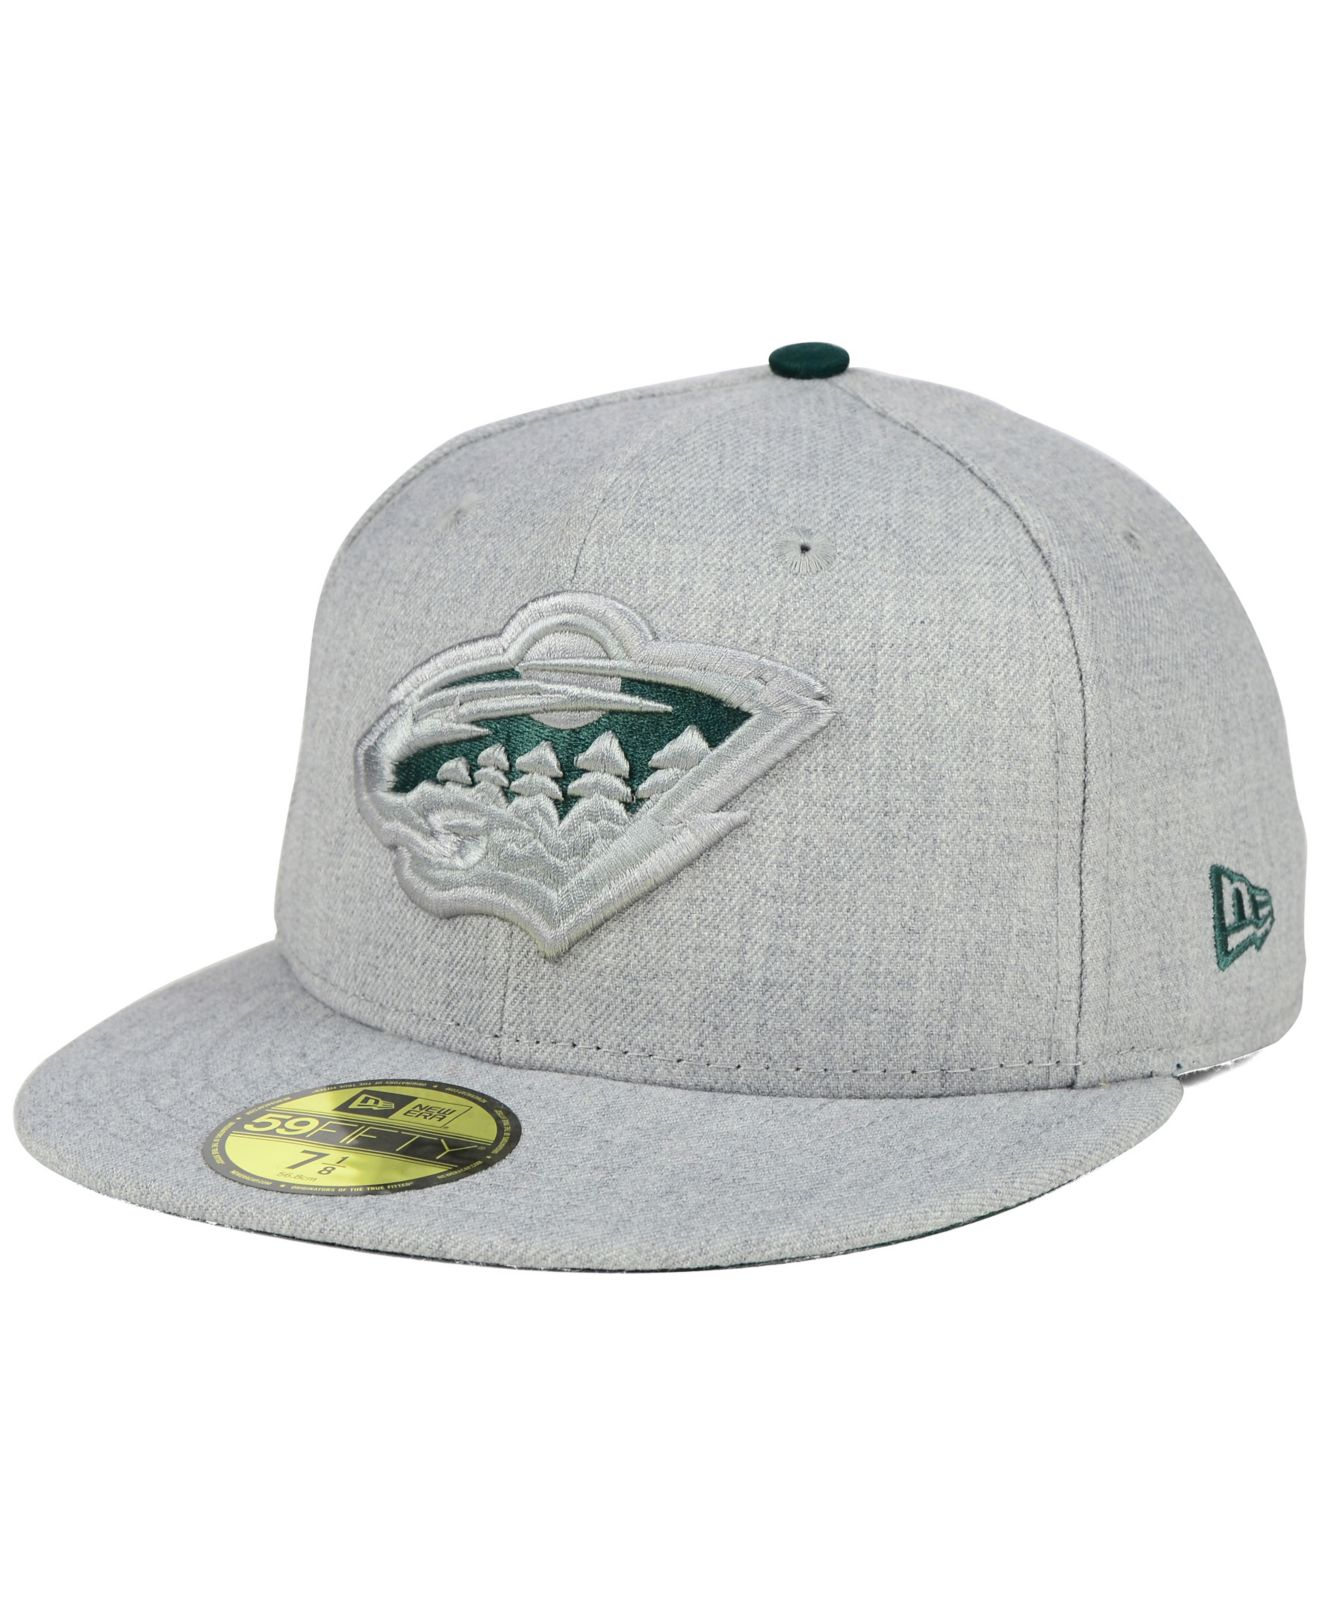 online store 360bf 5f2b9 ... snapback hat a66f2 e1413  best price lyst ktz minnesota wild heather  league basic 59fifty cap in gray for men 80124